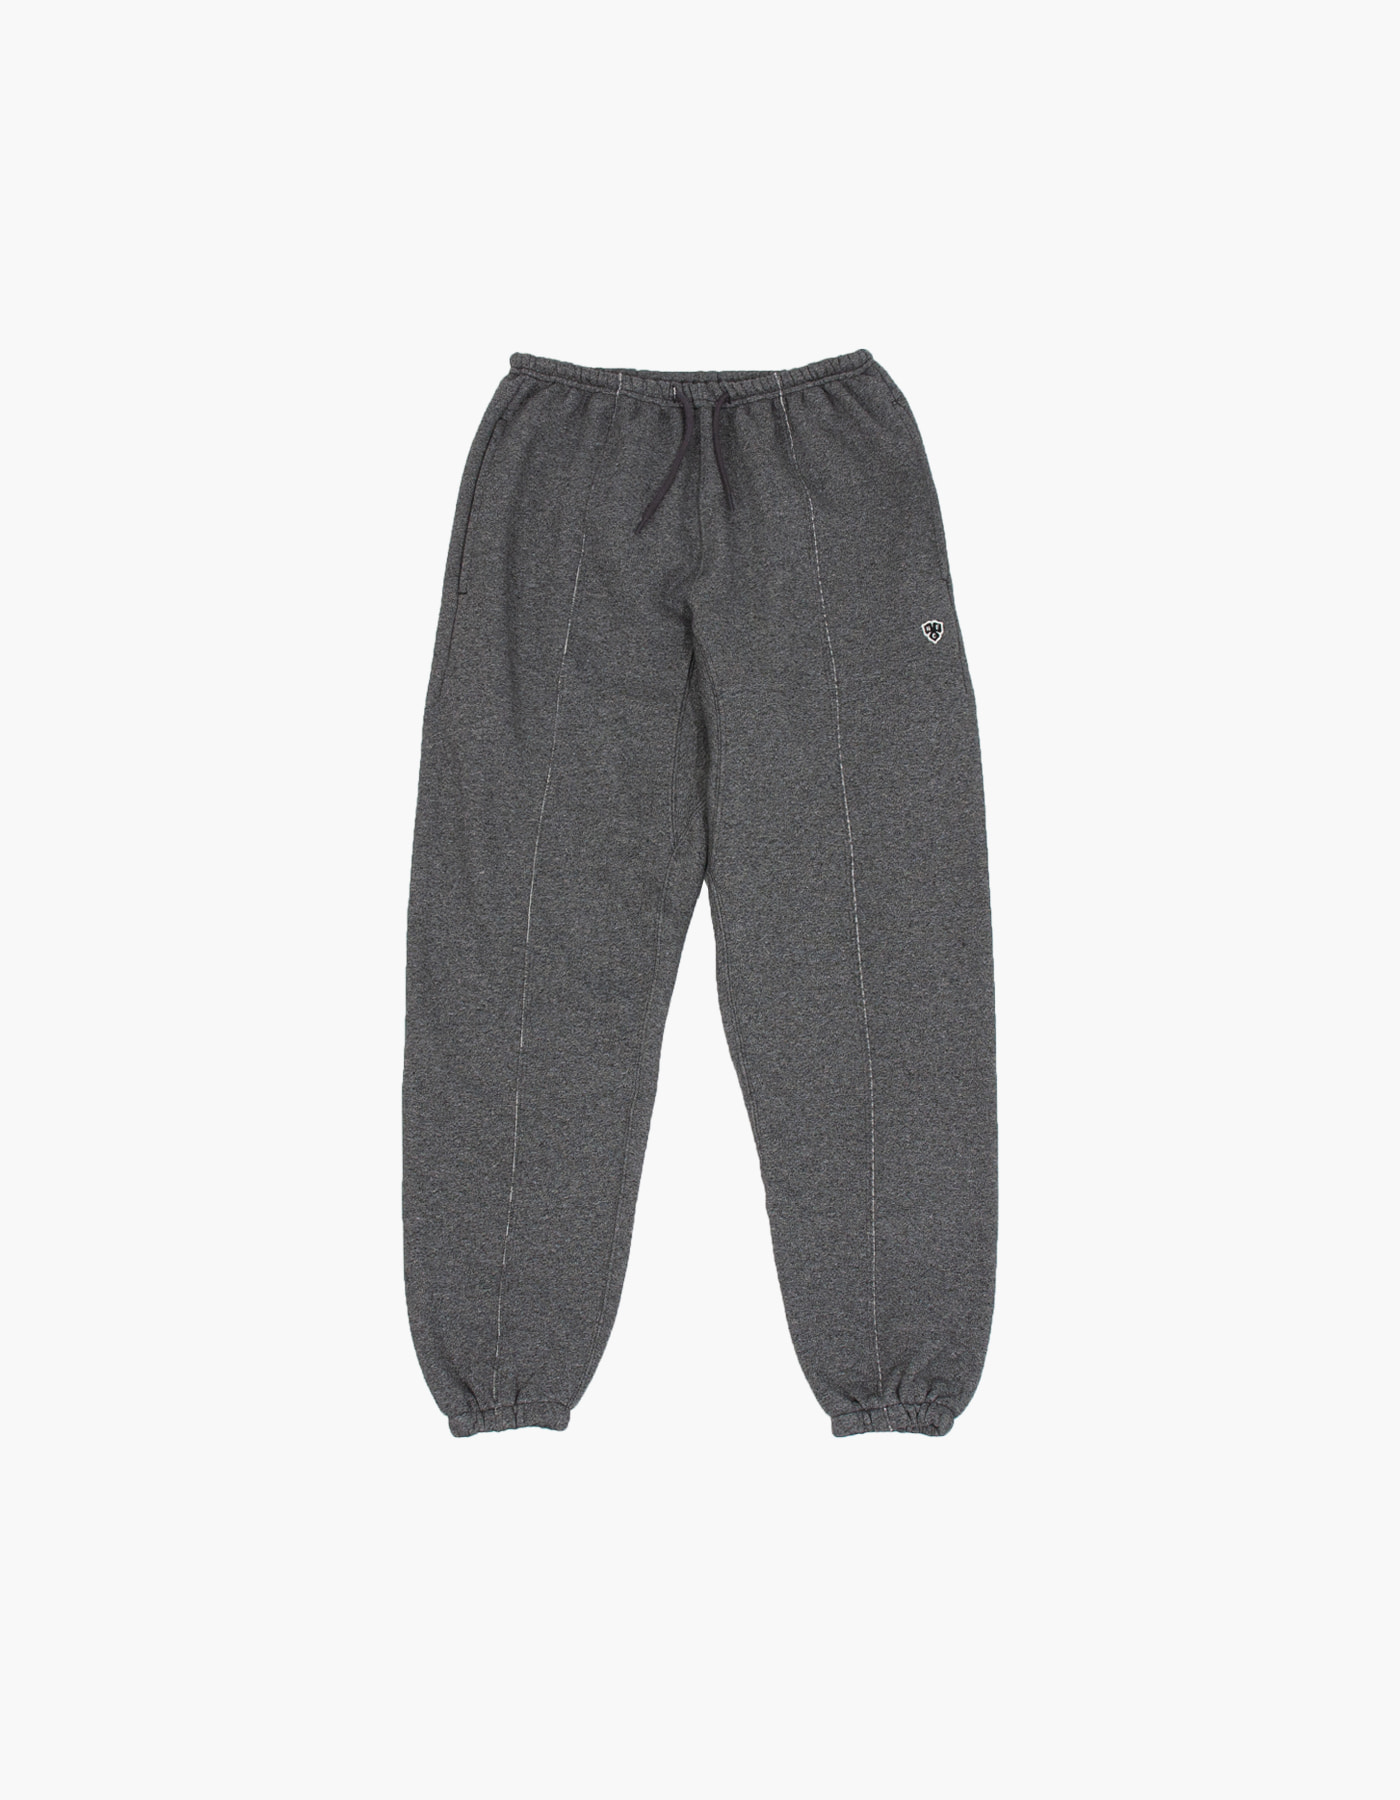 ACS SWEATPANTS / SALT&PEPPER